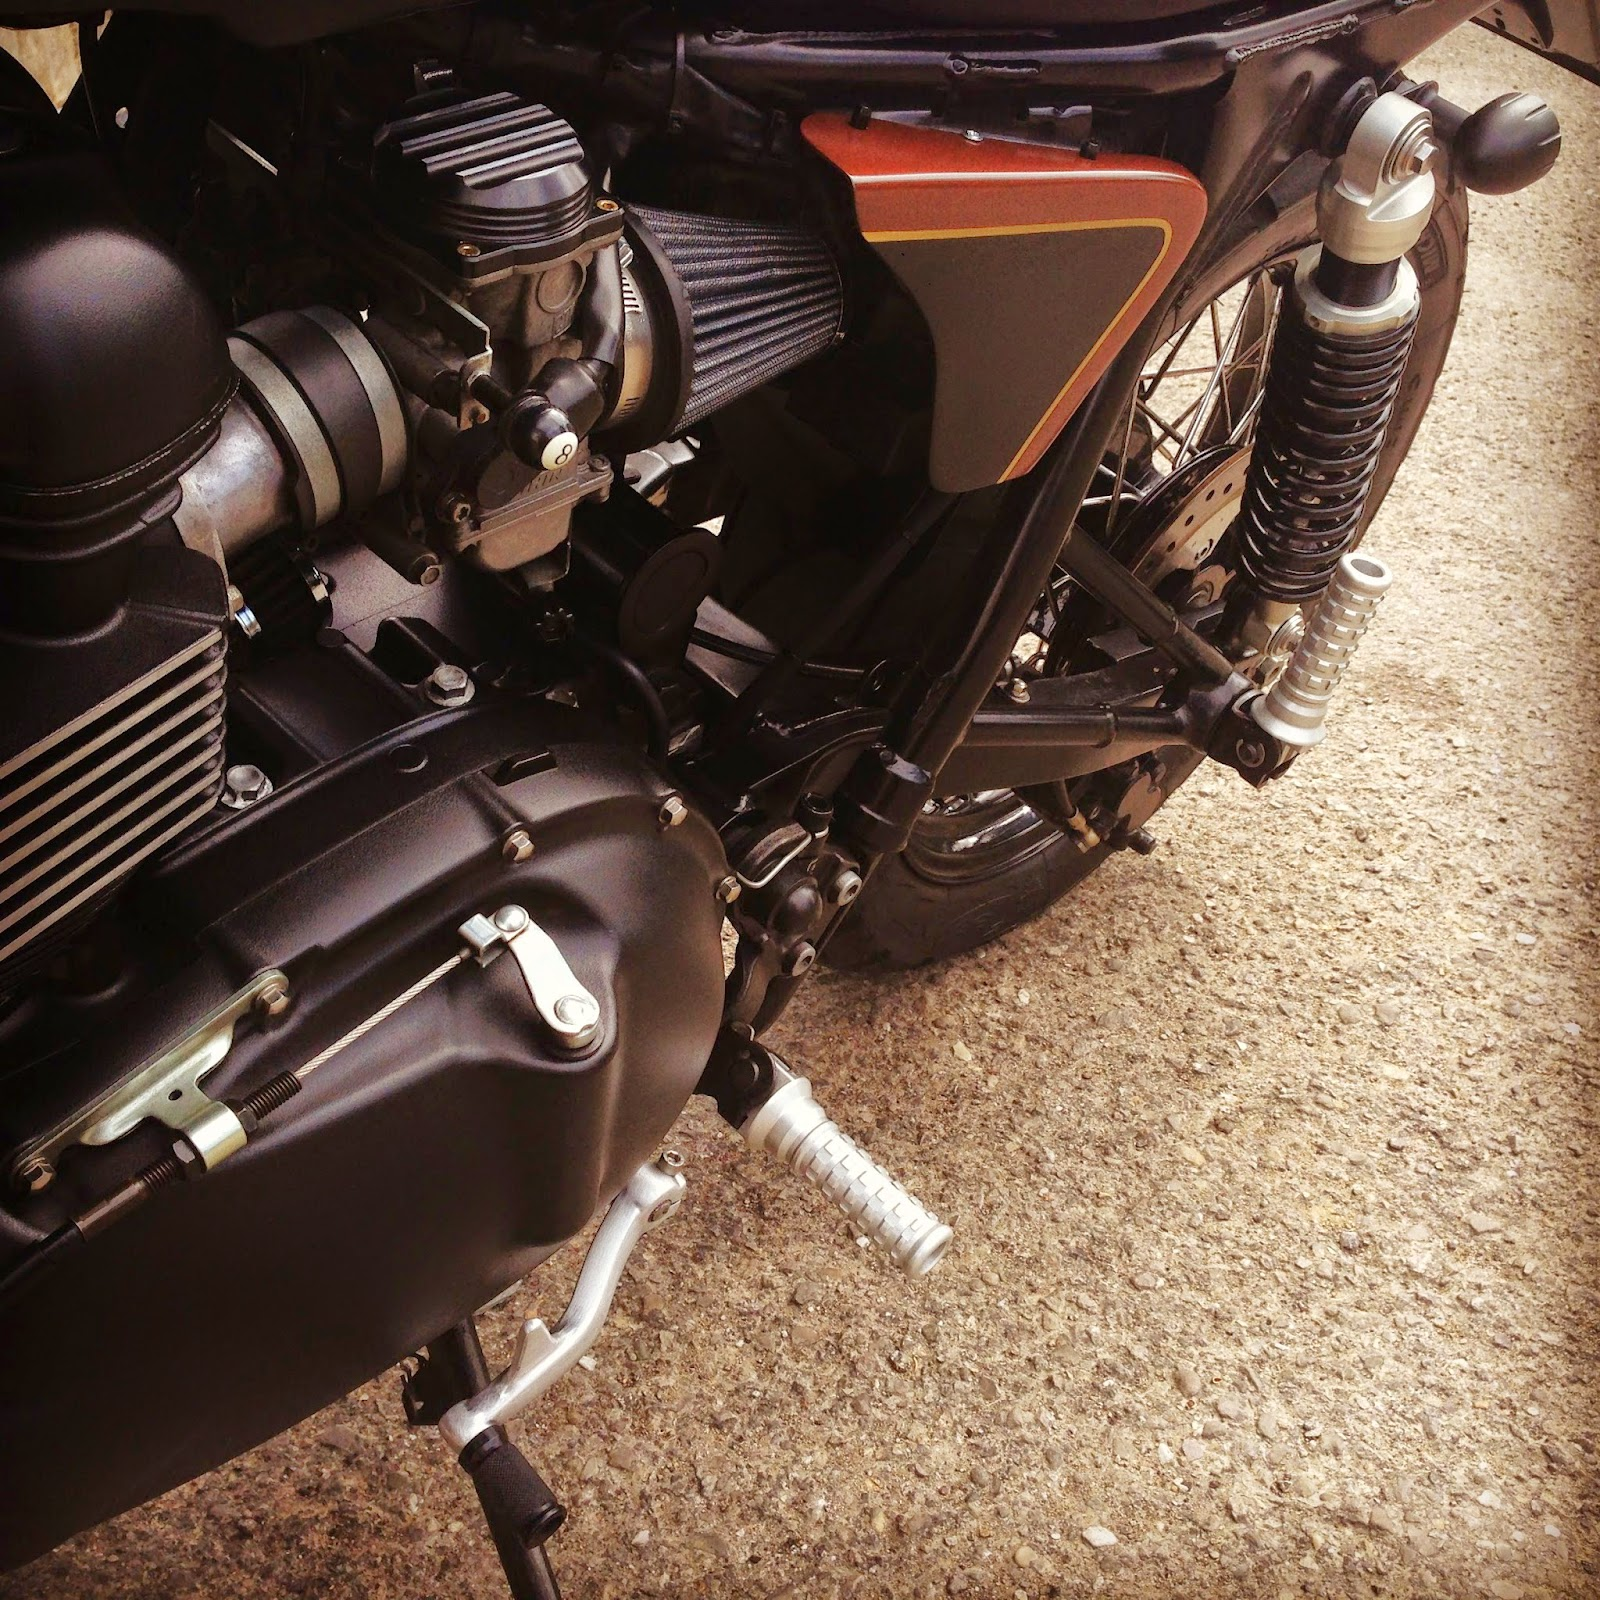 For Motorcycle fans: Triumph